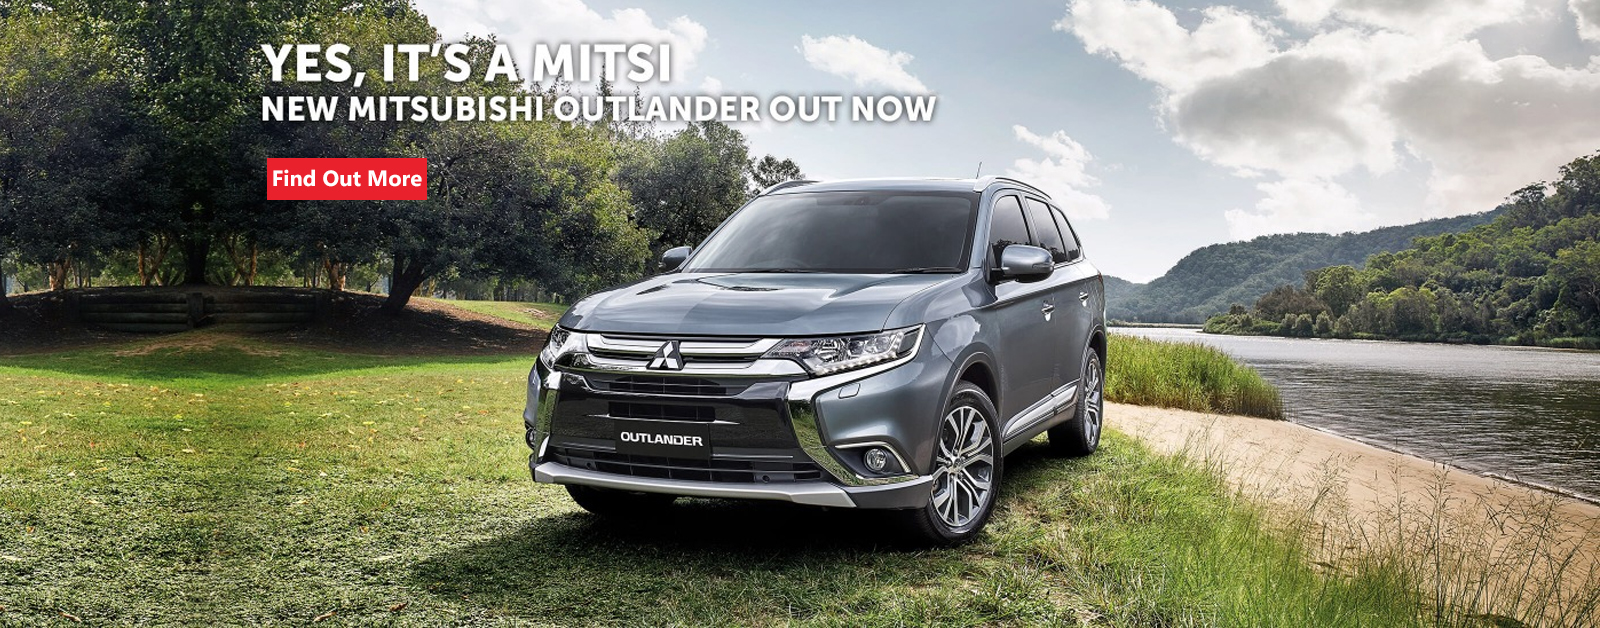 Yes, it's a Mitsi! New Mitsubishi Outlander out now and available at Nundah Mitsubishi Brisbane.